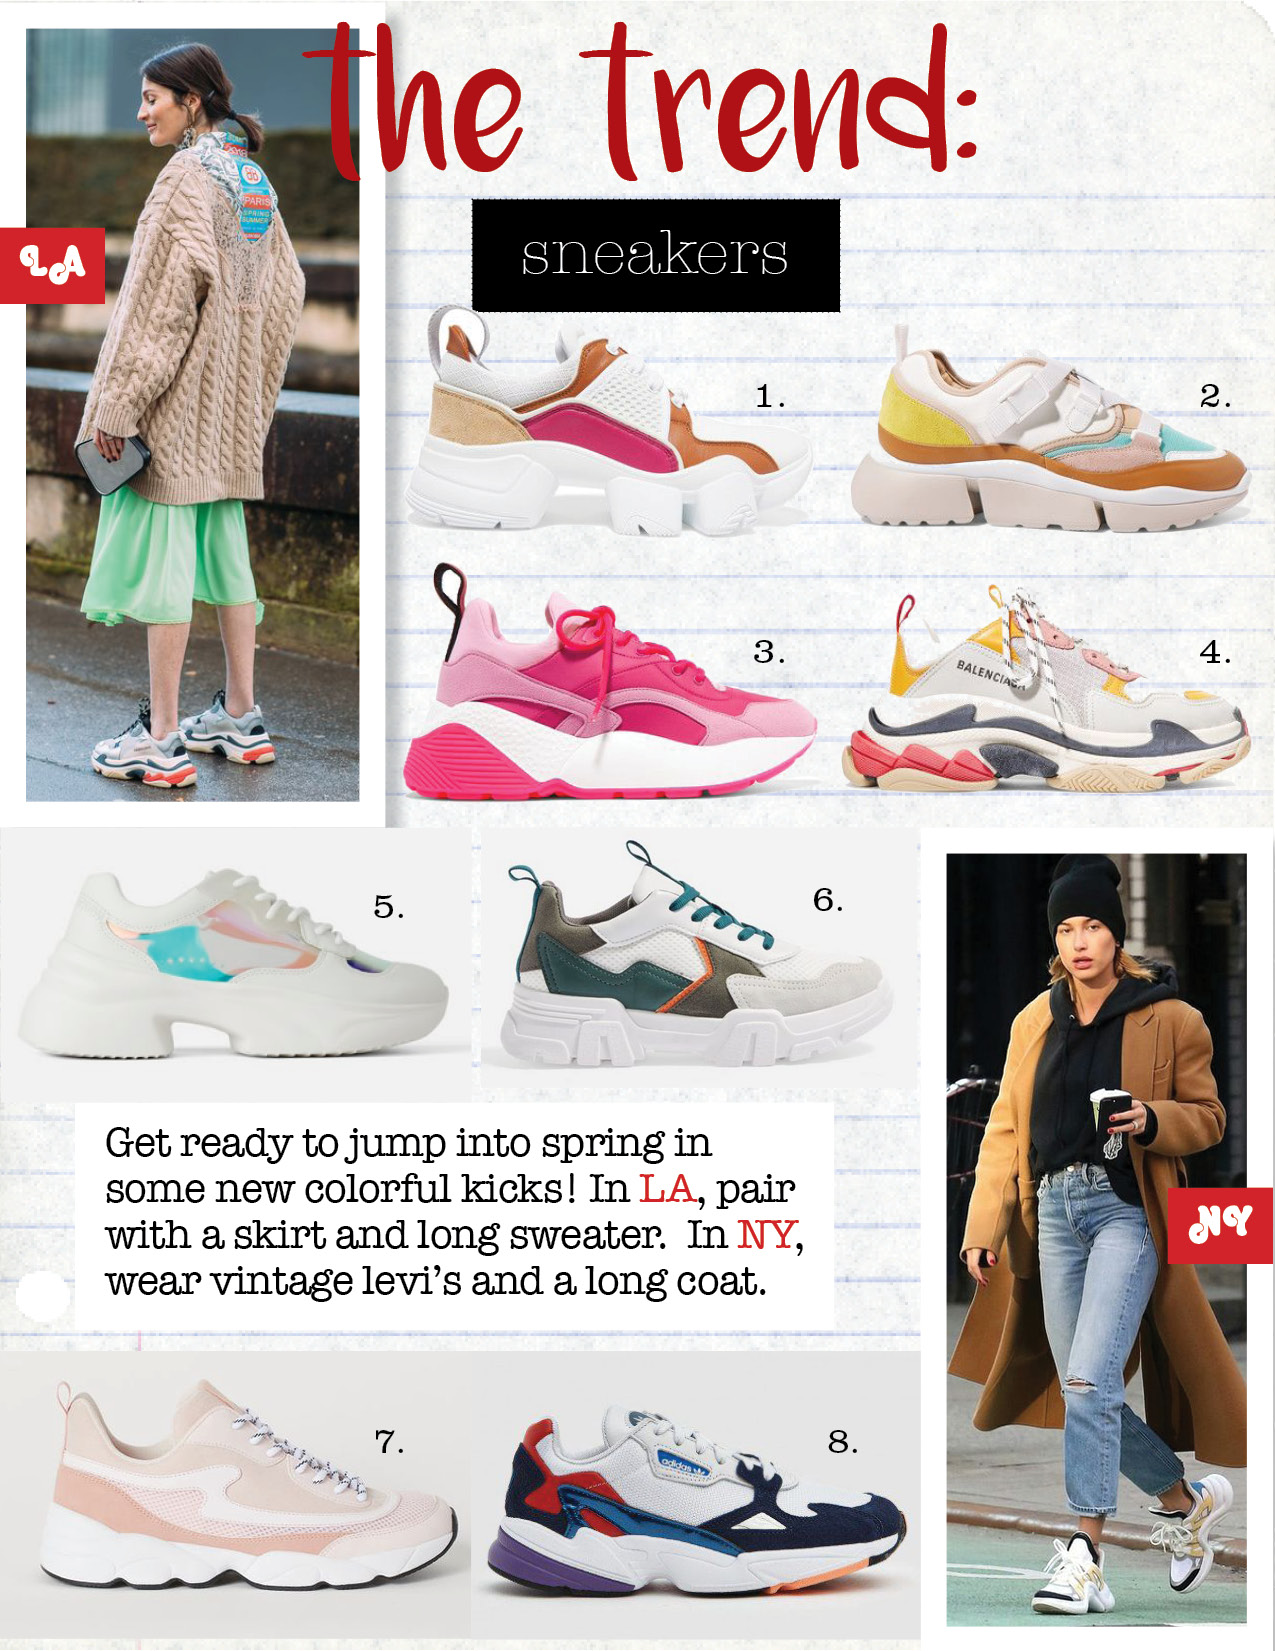 1. GIVENCHY MESH AND SUEDE-TRIMMED LEATHER SNEAKERS, $825,  NET-A-PORTER.COM  2. CHLOE SONNIE CANVAS, MESH, SUEDE AND LEATHER SNEAKERS, $620,  NET-A-PORTER.COM  3. STELLA MCCARTNEY ECLYPSE FAUX LEATHER , FAUX SUEDE SNEAKERS, $685,  NET-A-PORTER.COM  4. BALENCIAGA TRIPLE S LOGO SNEAKERS, $895,  NET-A-PORTER.COM  5. ZARA IRIDESCENT SNEAKERS, $69,  ZARA.COM  6. TOPSHOP CASABLANCA CHUNKY TRAINERS, $70,  TOPSHOP.COM  7. H&M MESH SNEAKERS, $34,  HM.COM  8. ADIDAS FALCON W SNEAKER, $100,  NEEDSUPPLY.COM